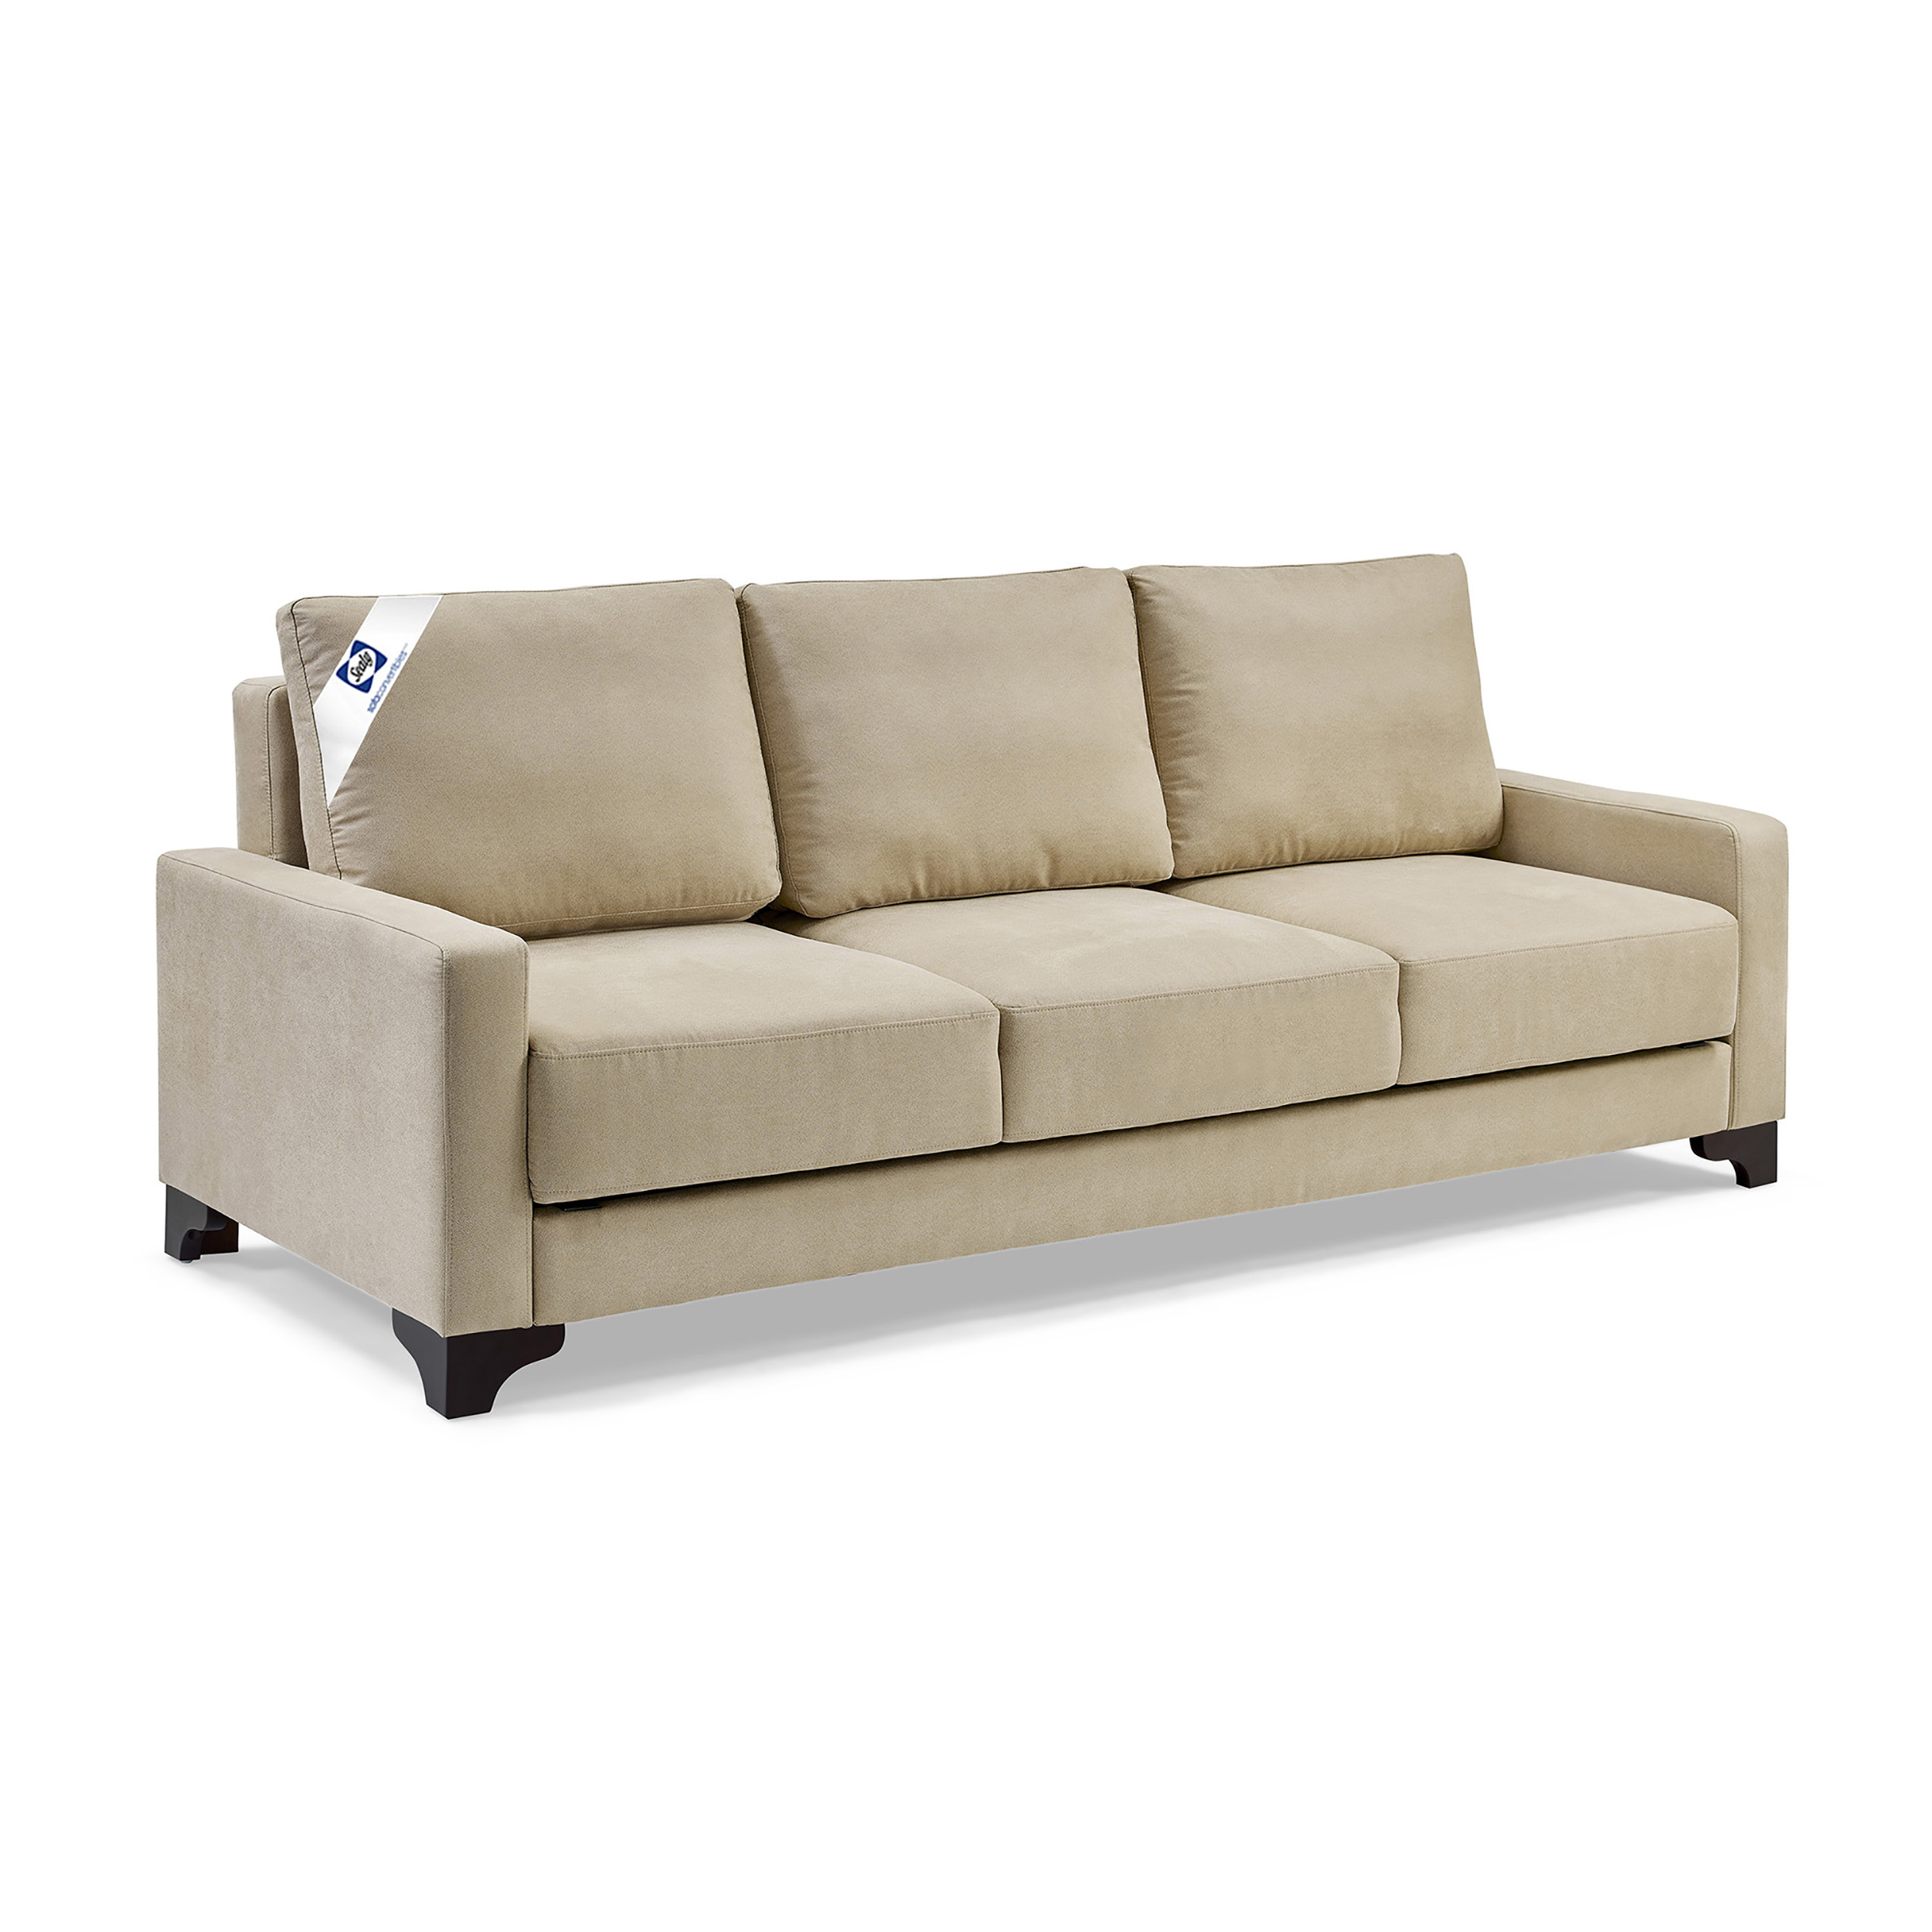 Sealy Sofa Bed Sealy Sofa Bed 1025theparty Thesofa